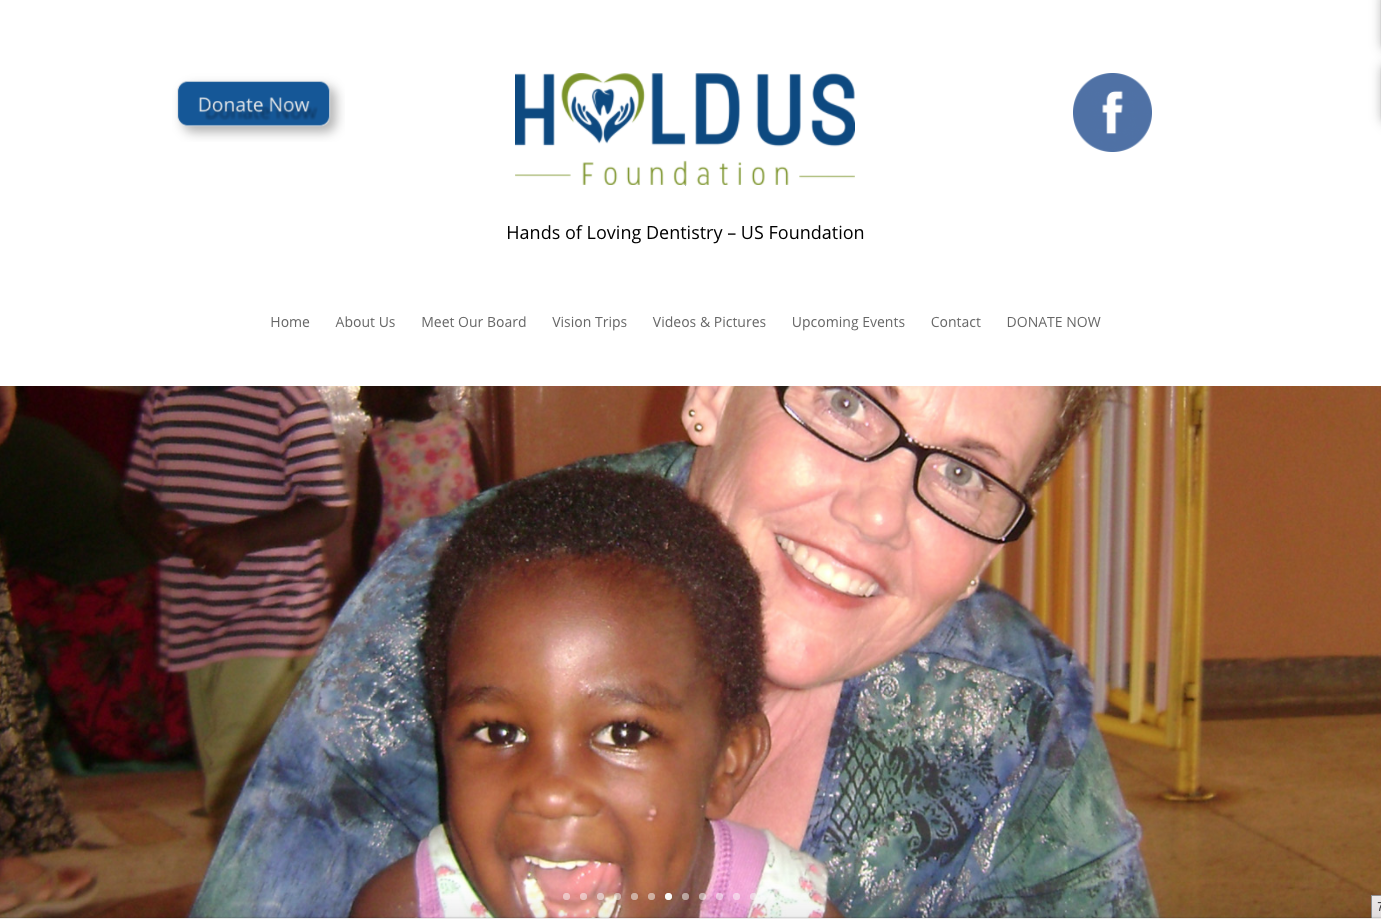 HoldUS Foundation